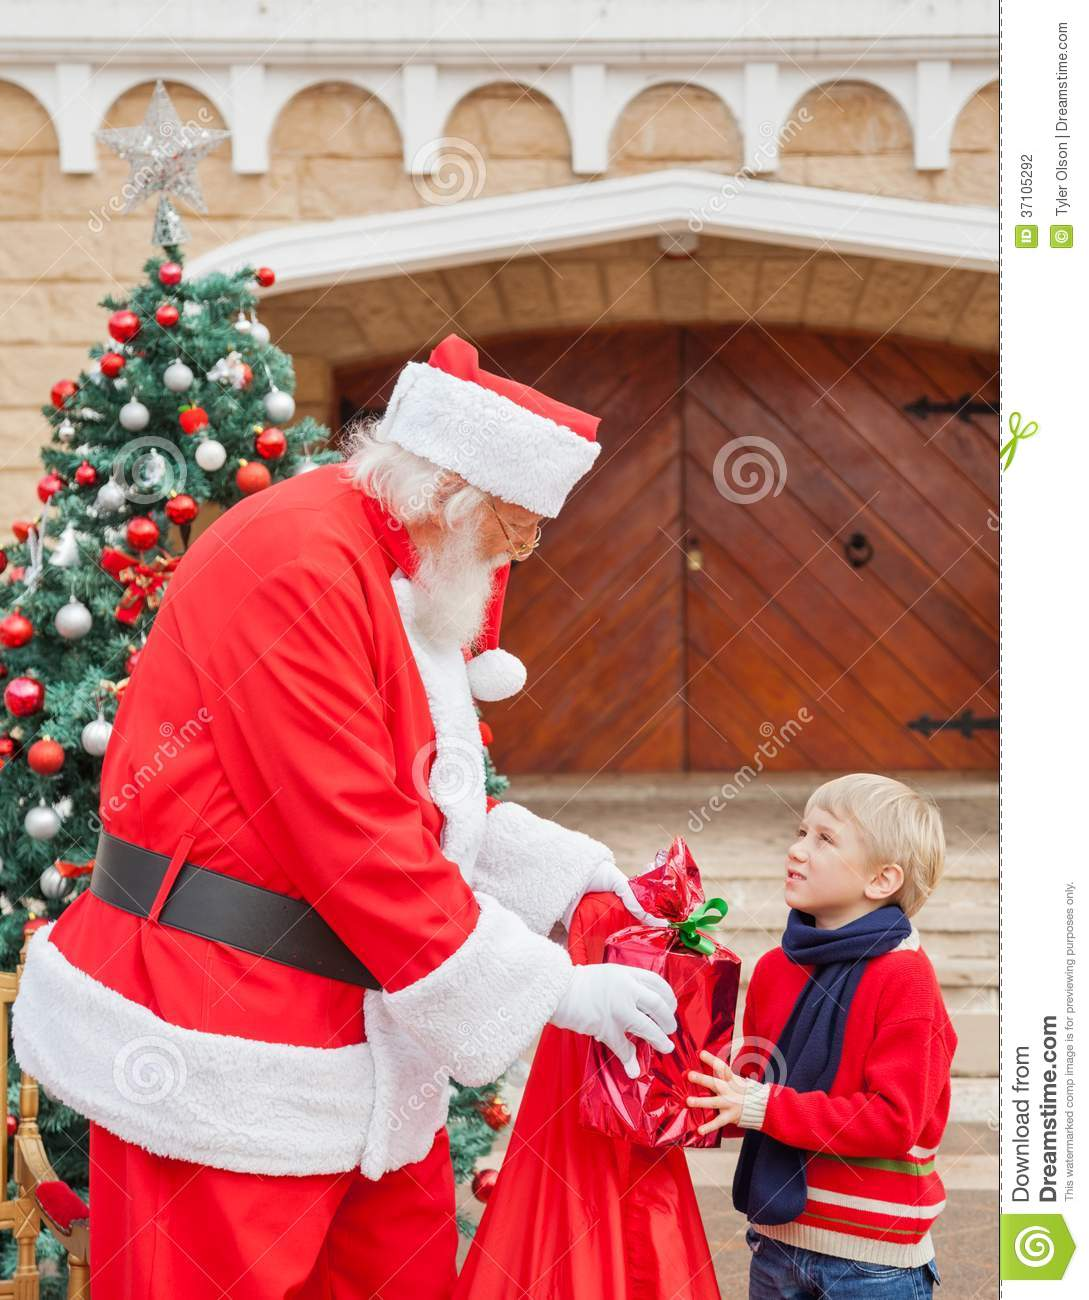 Muchacho que mira a Santa Claus While Taking Gift From